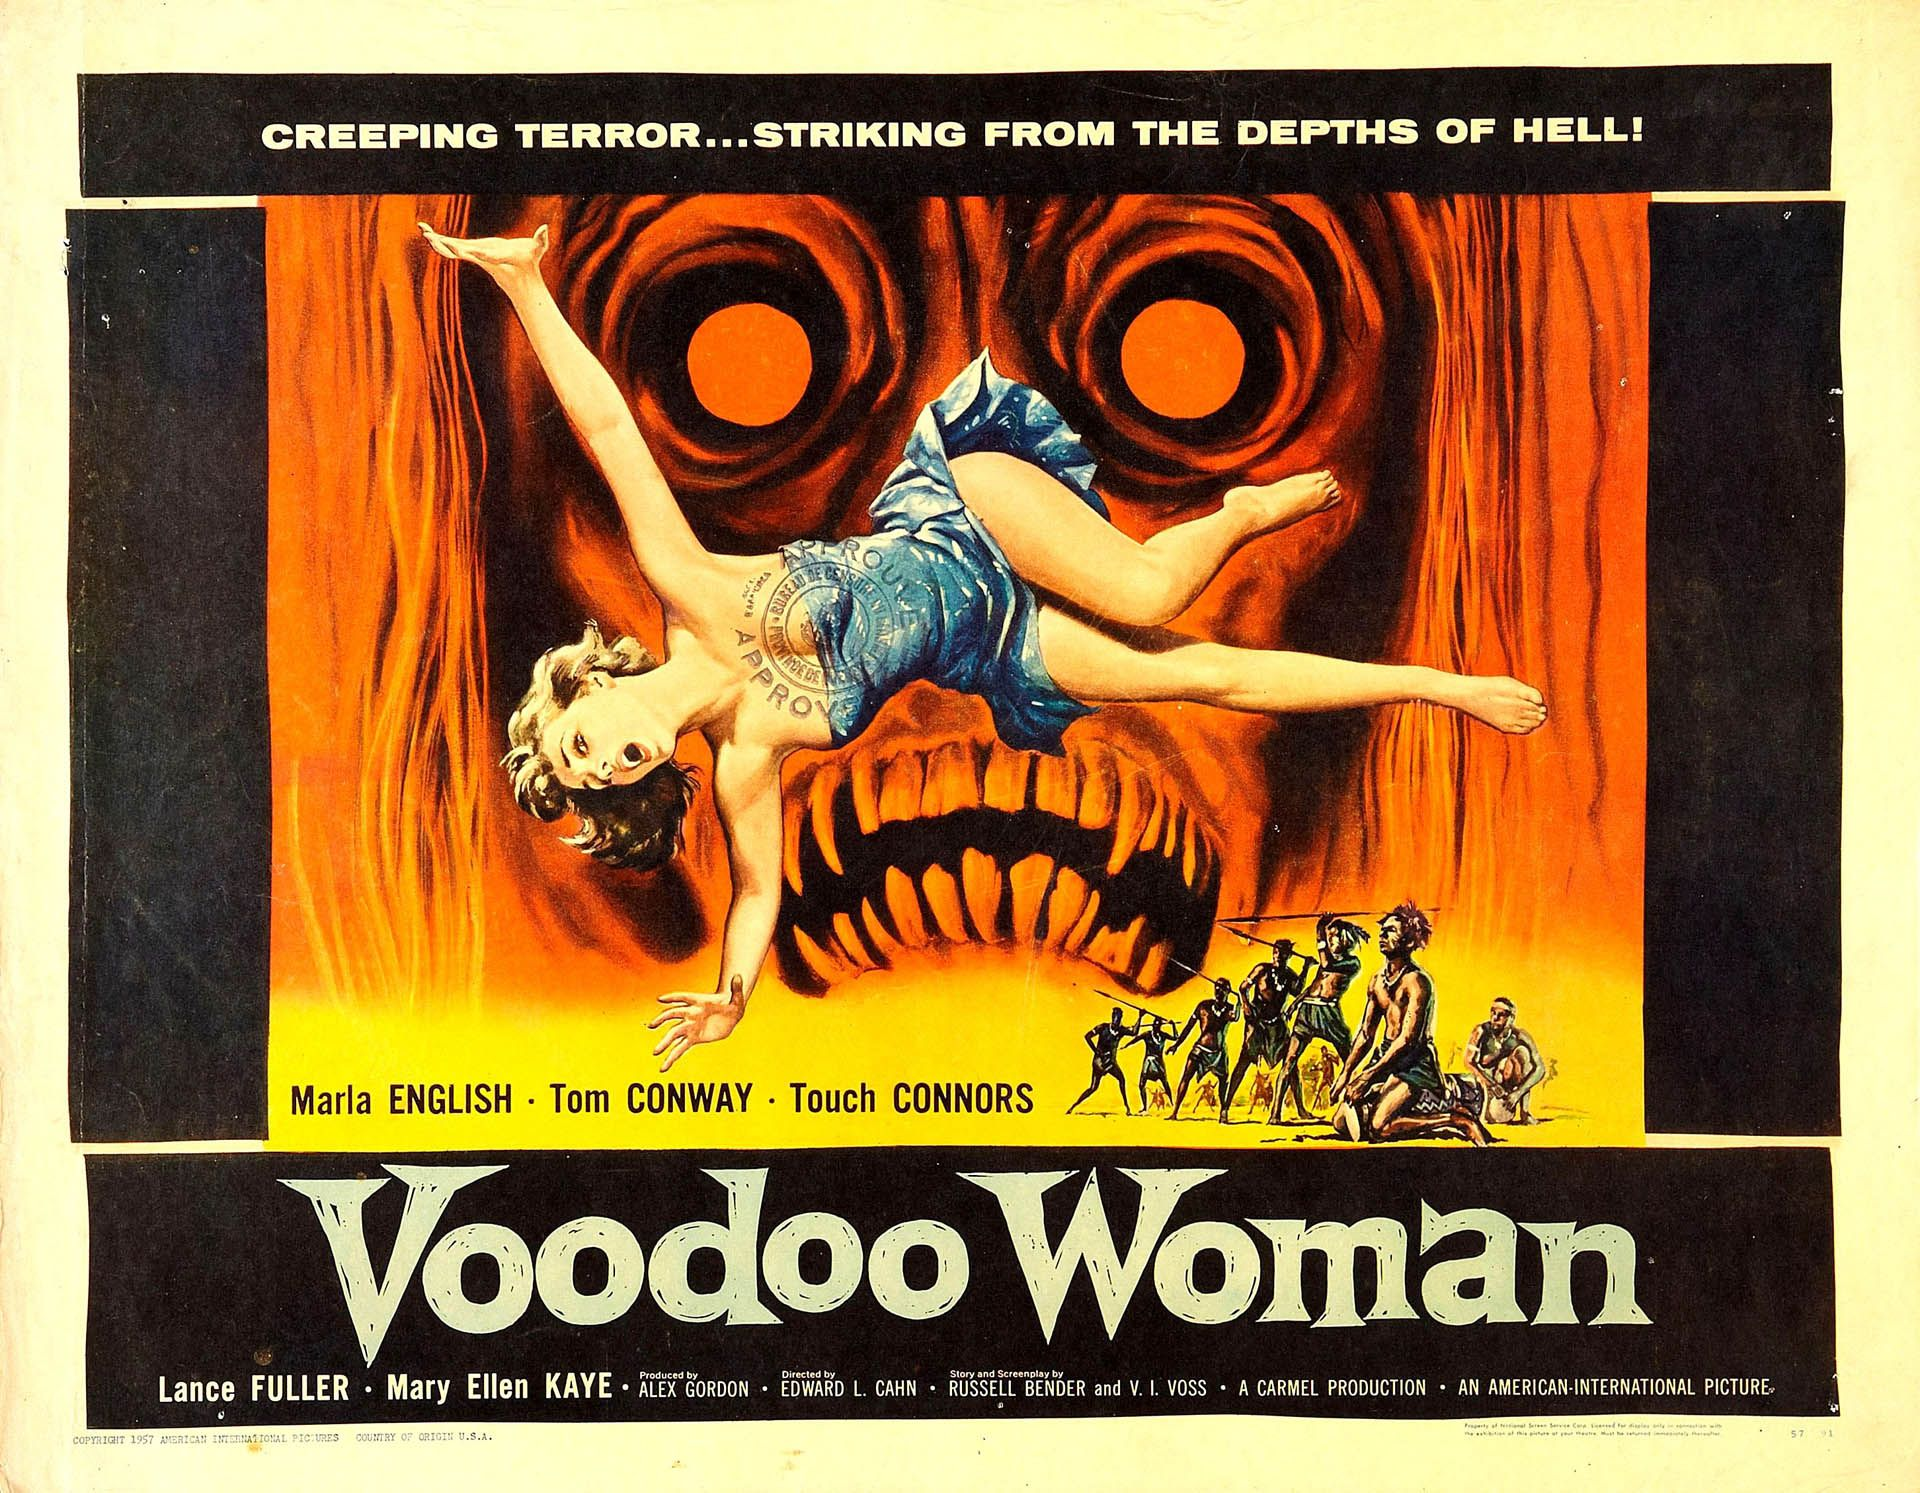 Excellent Movie Poster Design For Voodoo Woman Loving This Strange Cool Image Saved Here As A Wallpaper